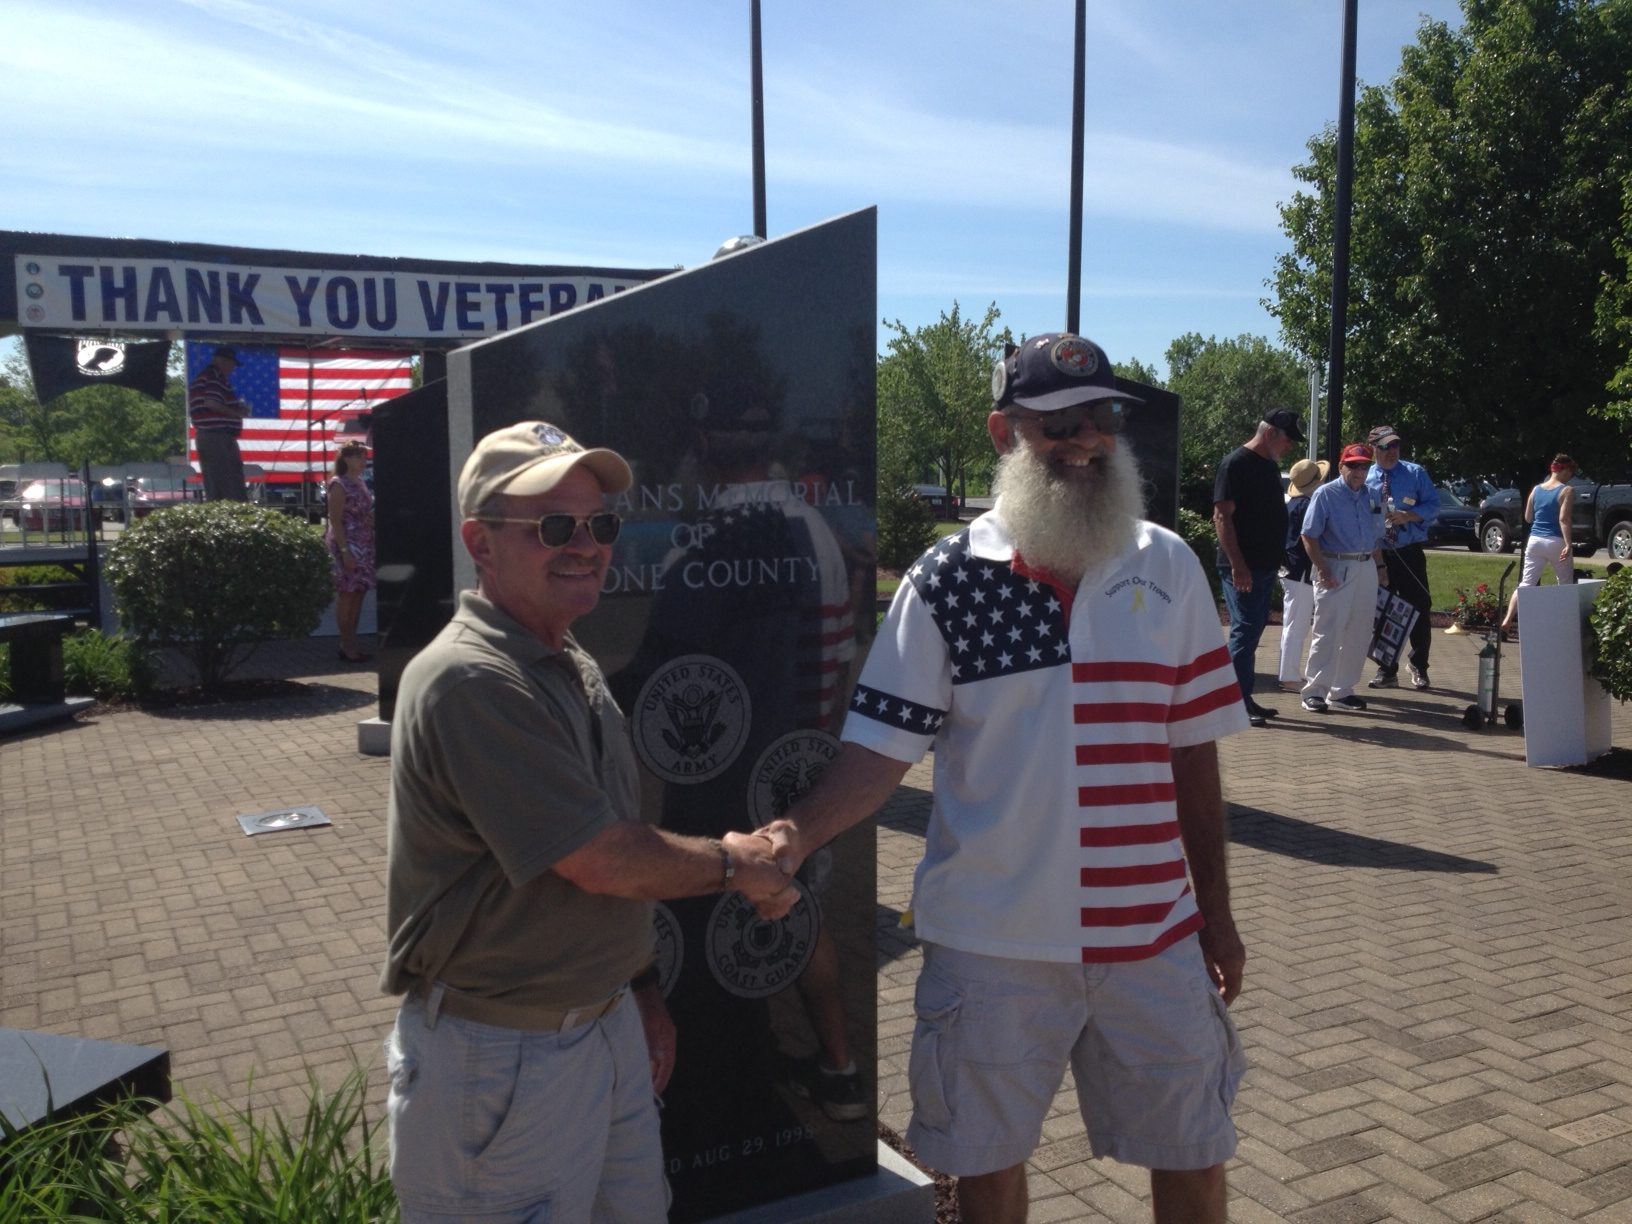 Jim Perkins of Burlington (left), shakes hands with Keith Maupin in front of the Florence Veteran's Memorial. Maupin's son Matt Maupin was killed after being captured in Iraq in 2004.